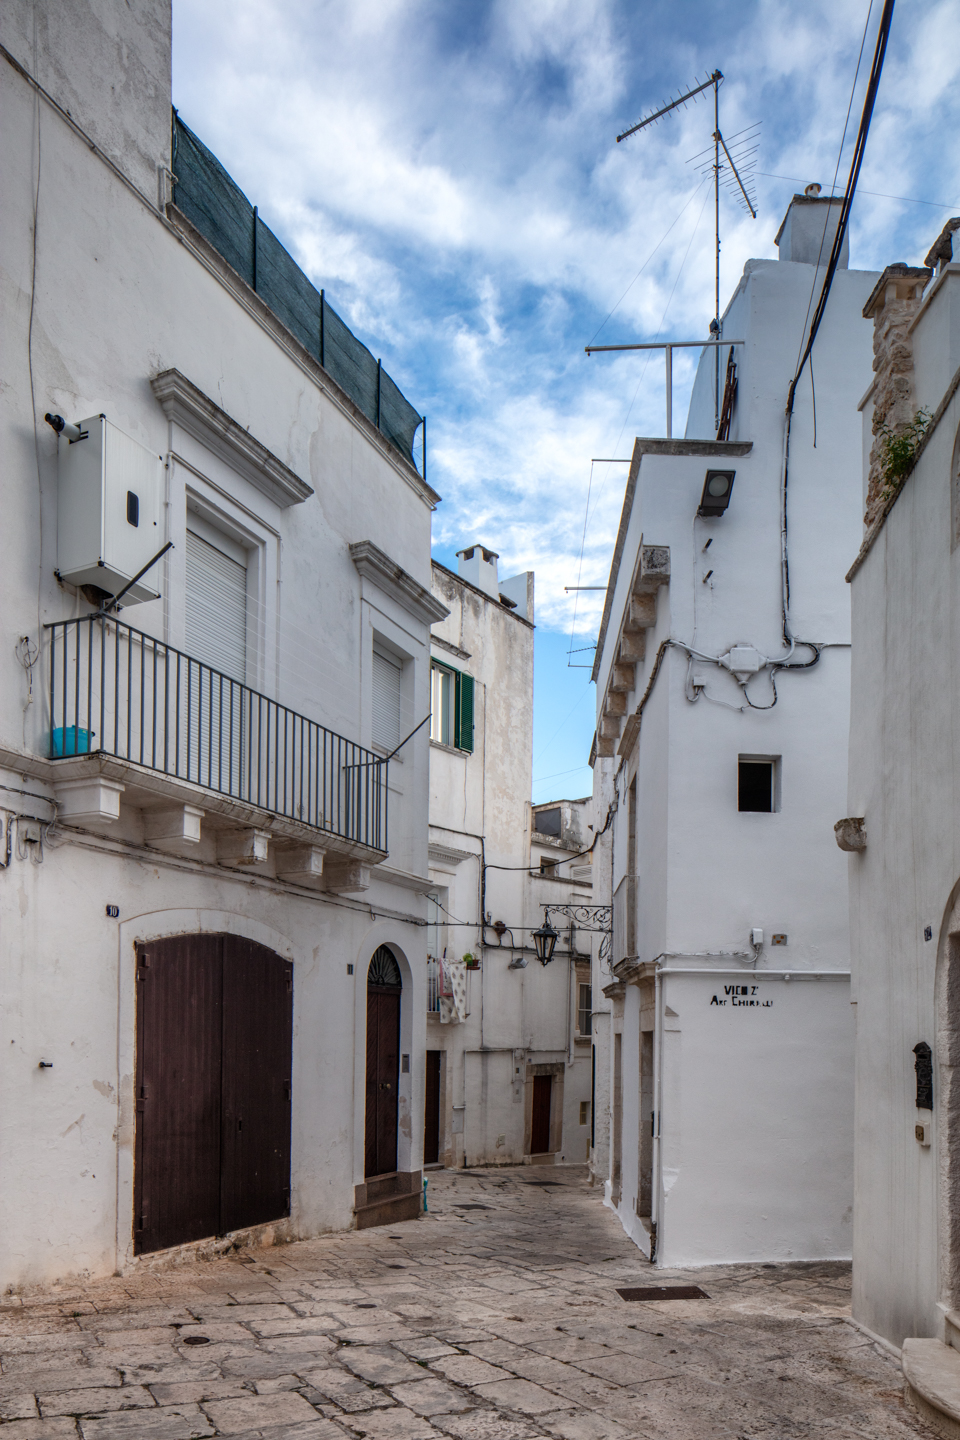 Houses, Martina Franca, August 14, Italy, 2018